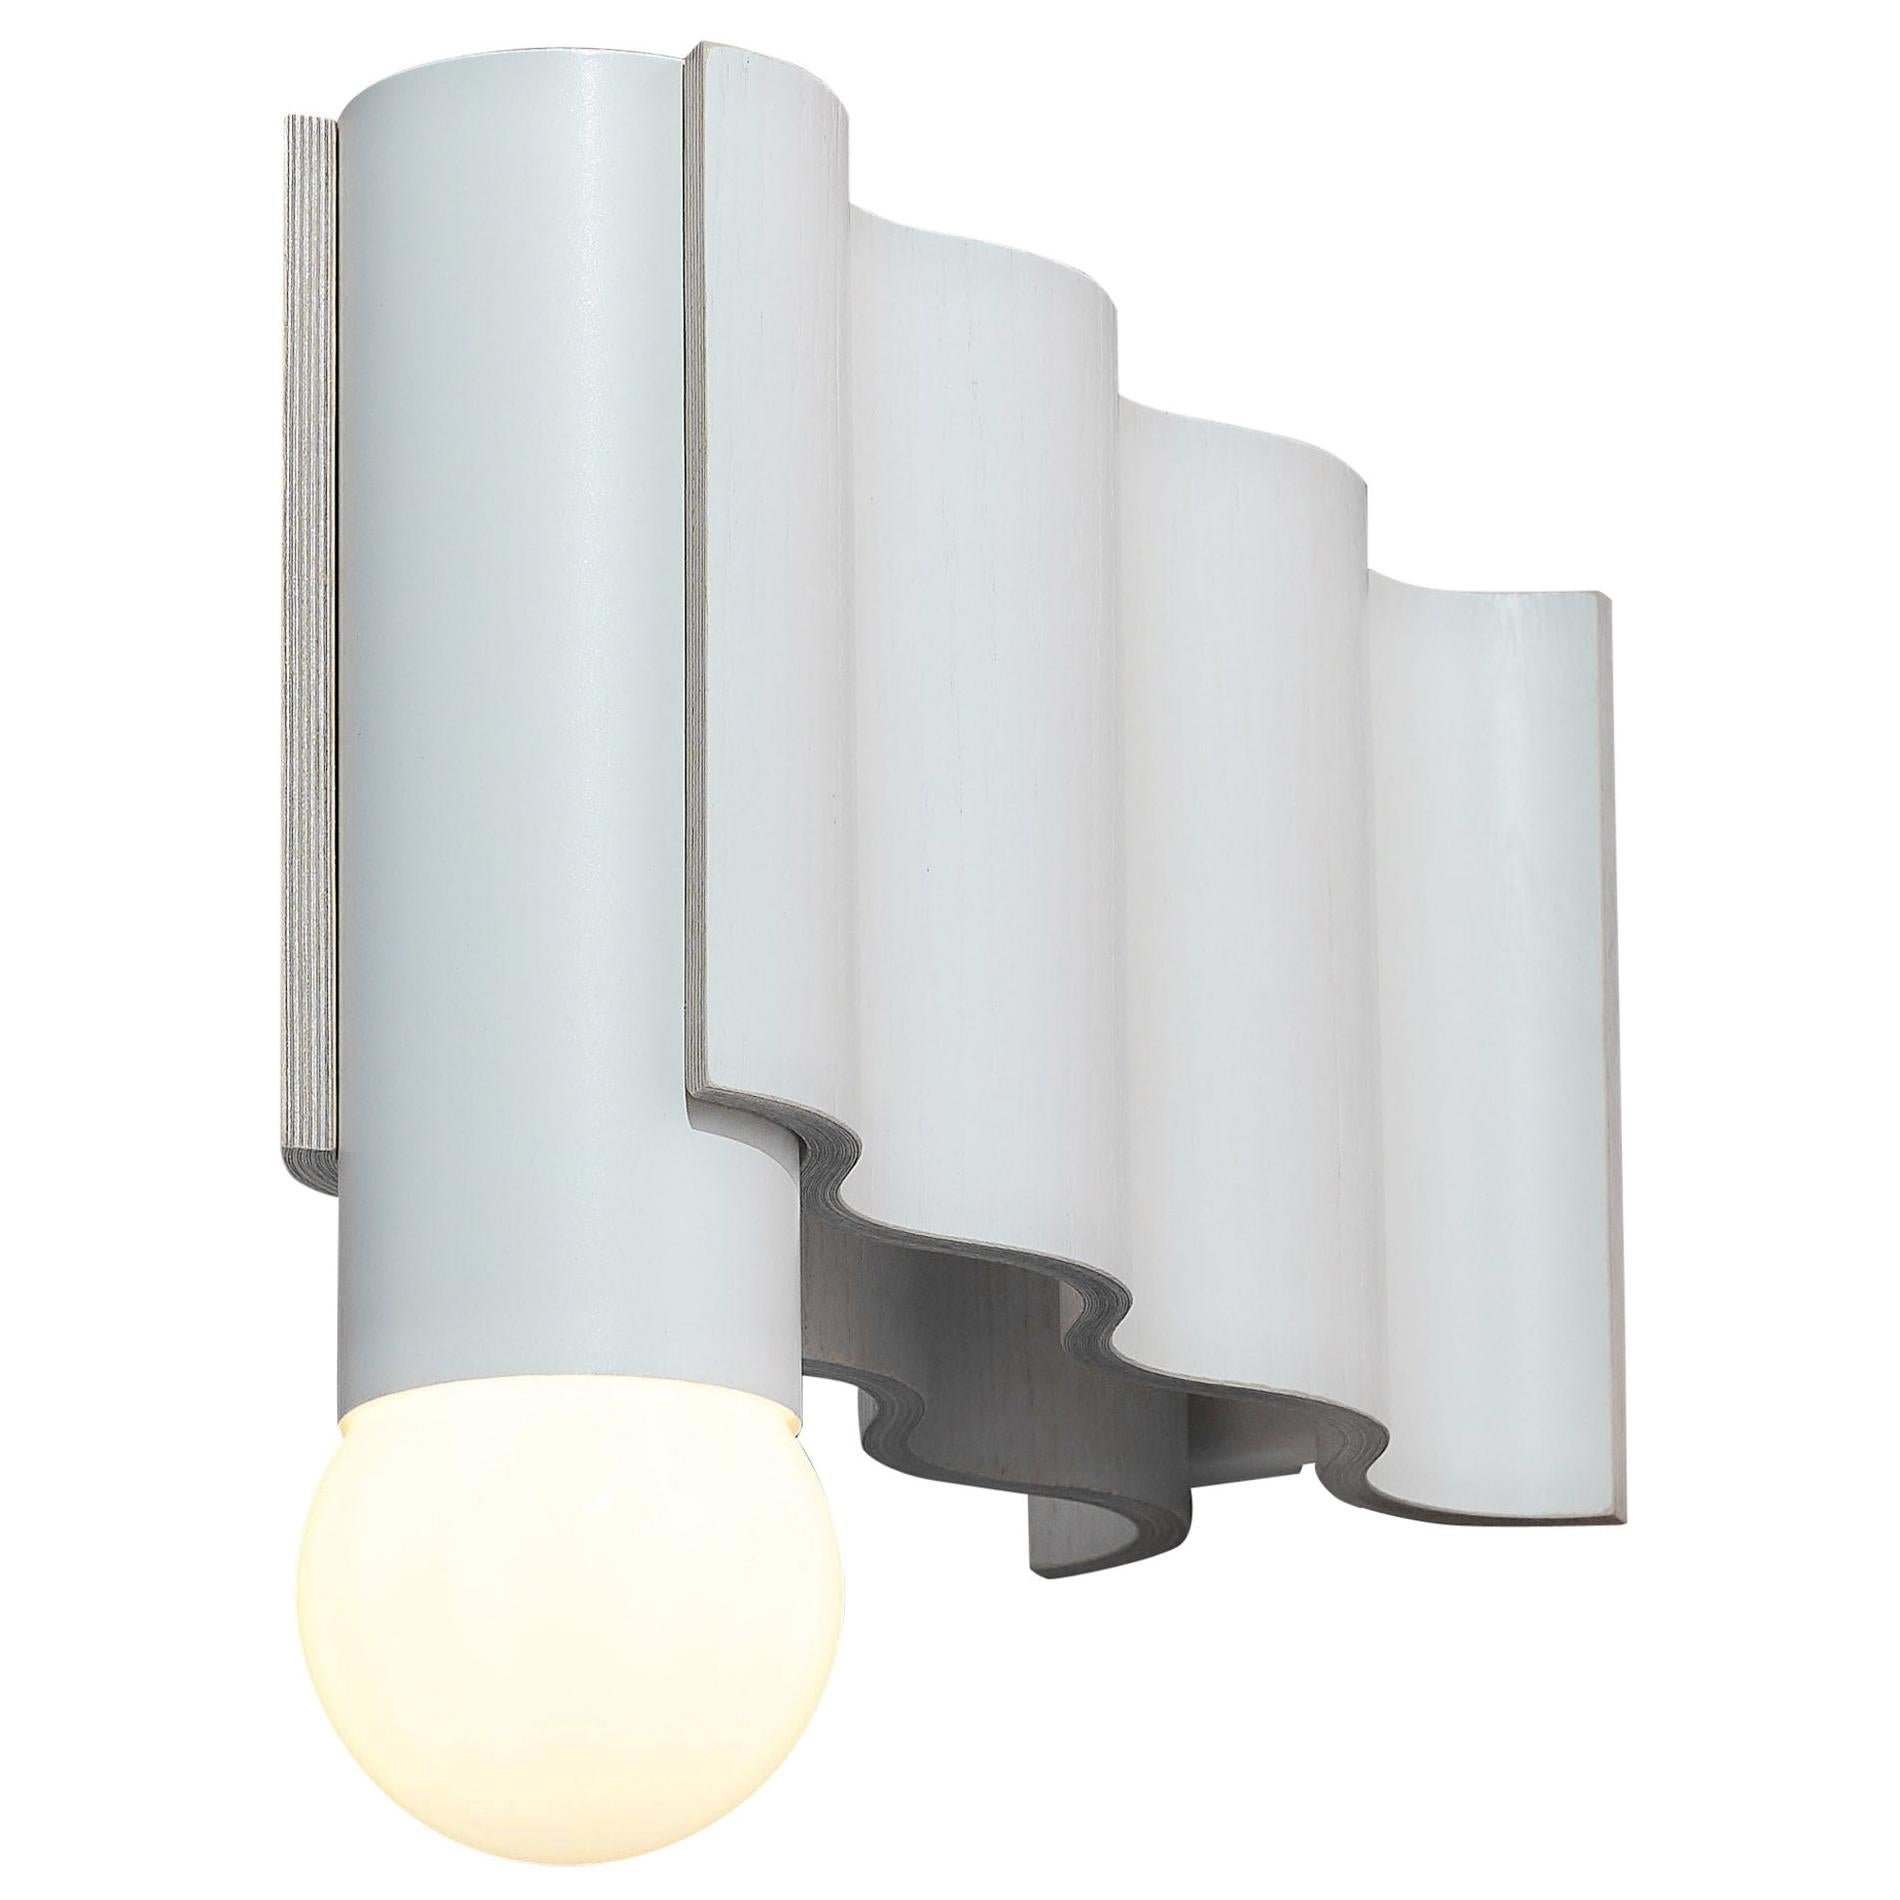 Single Corrugation Sconce / Wall Light in Off-White